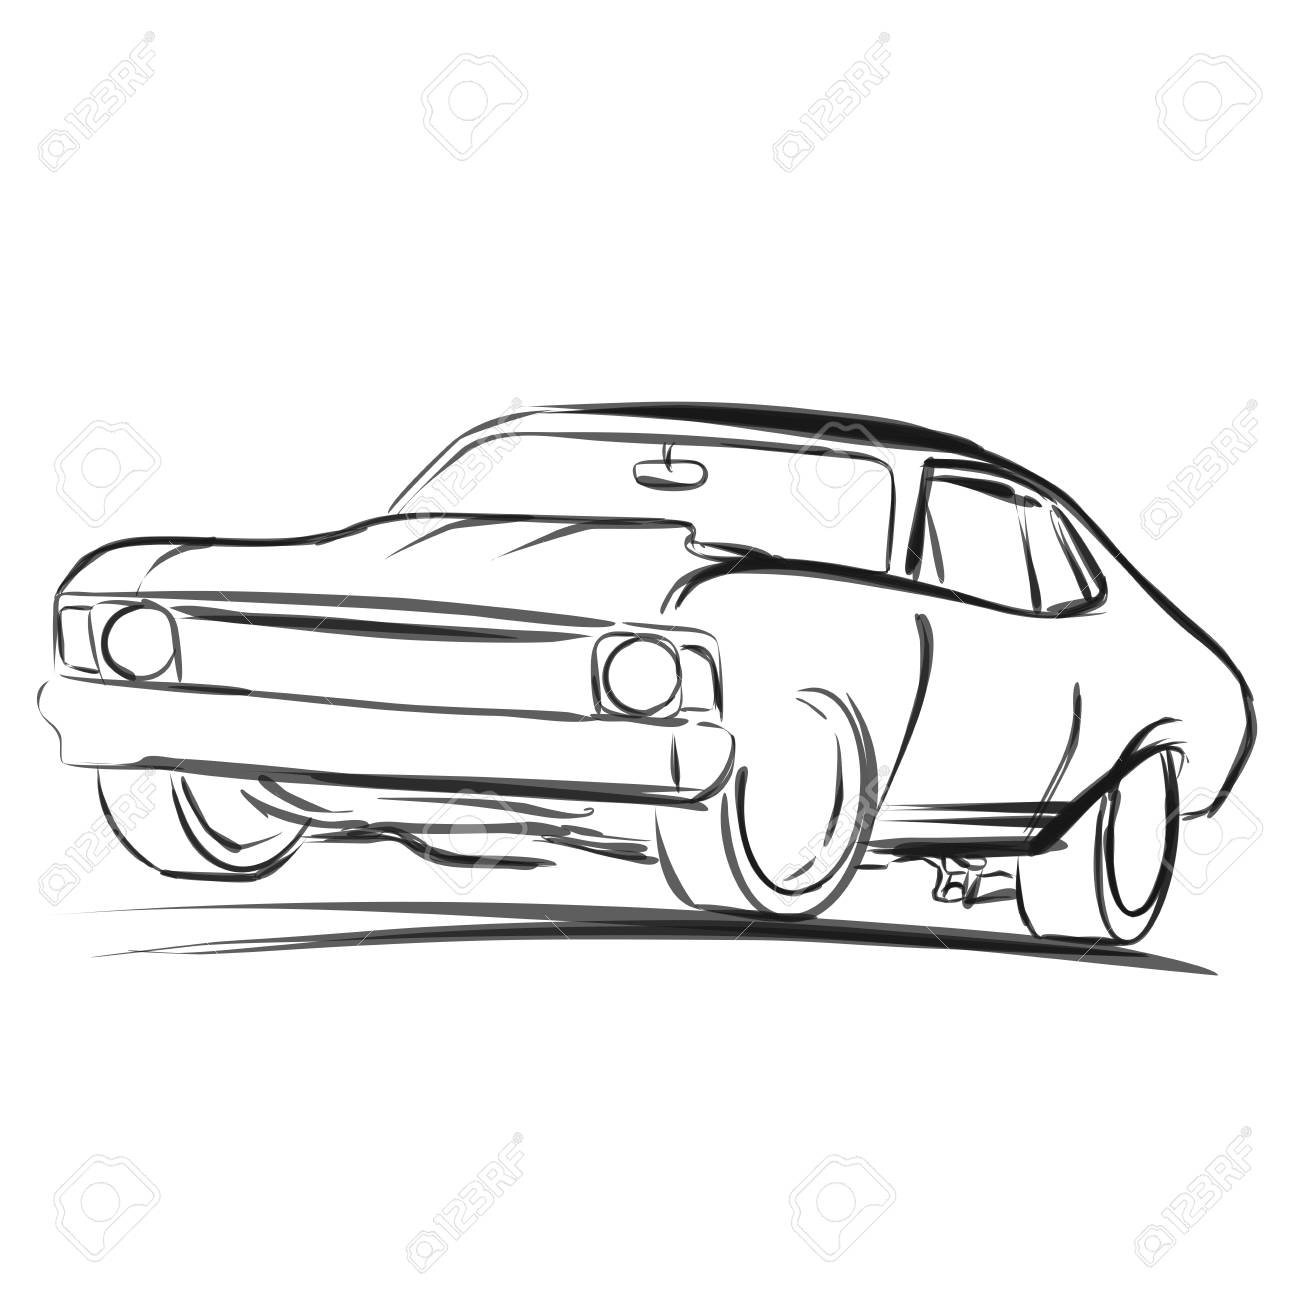 Old Muscle Car Outline Sketch Vector Artwork Royalty Free Cliparts